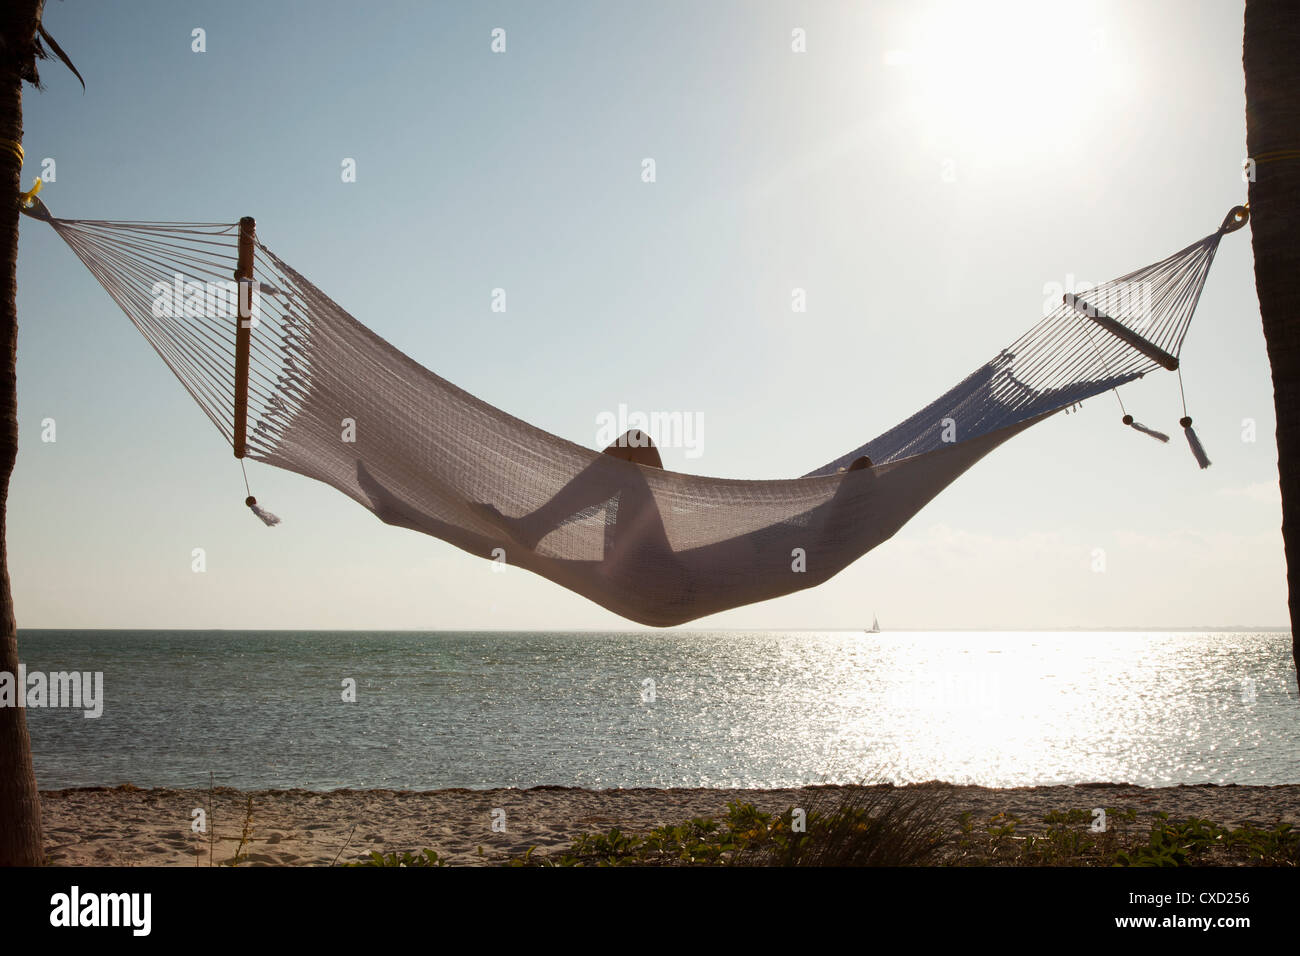 Woman in a hammock on the beach, Florida, United States of America, North America - Stock Image